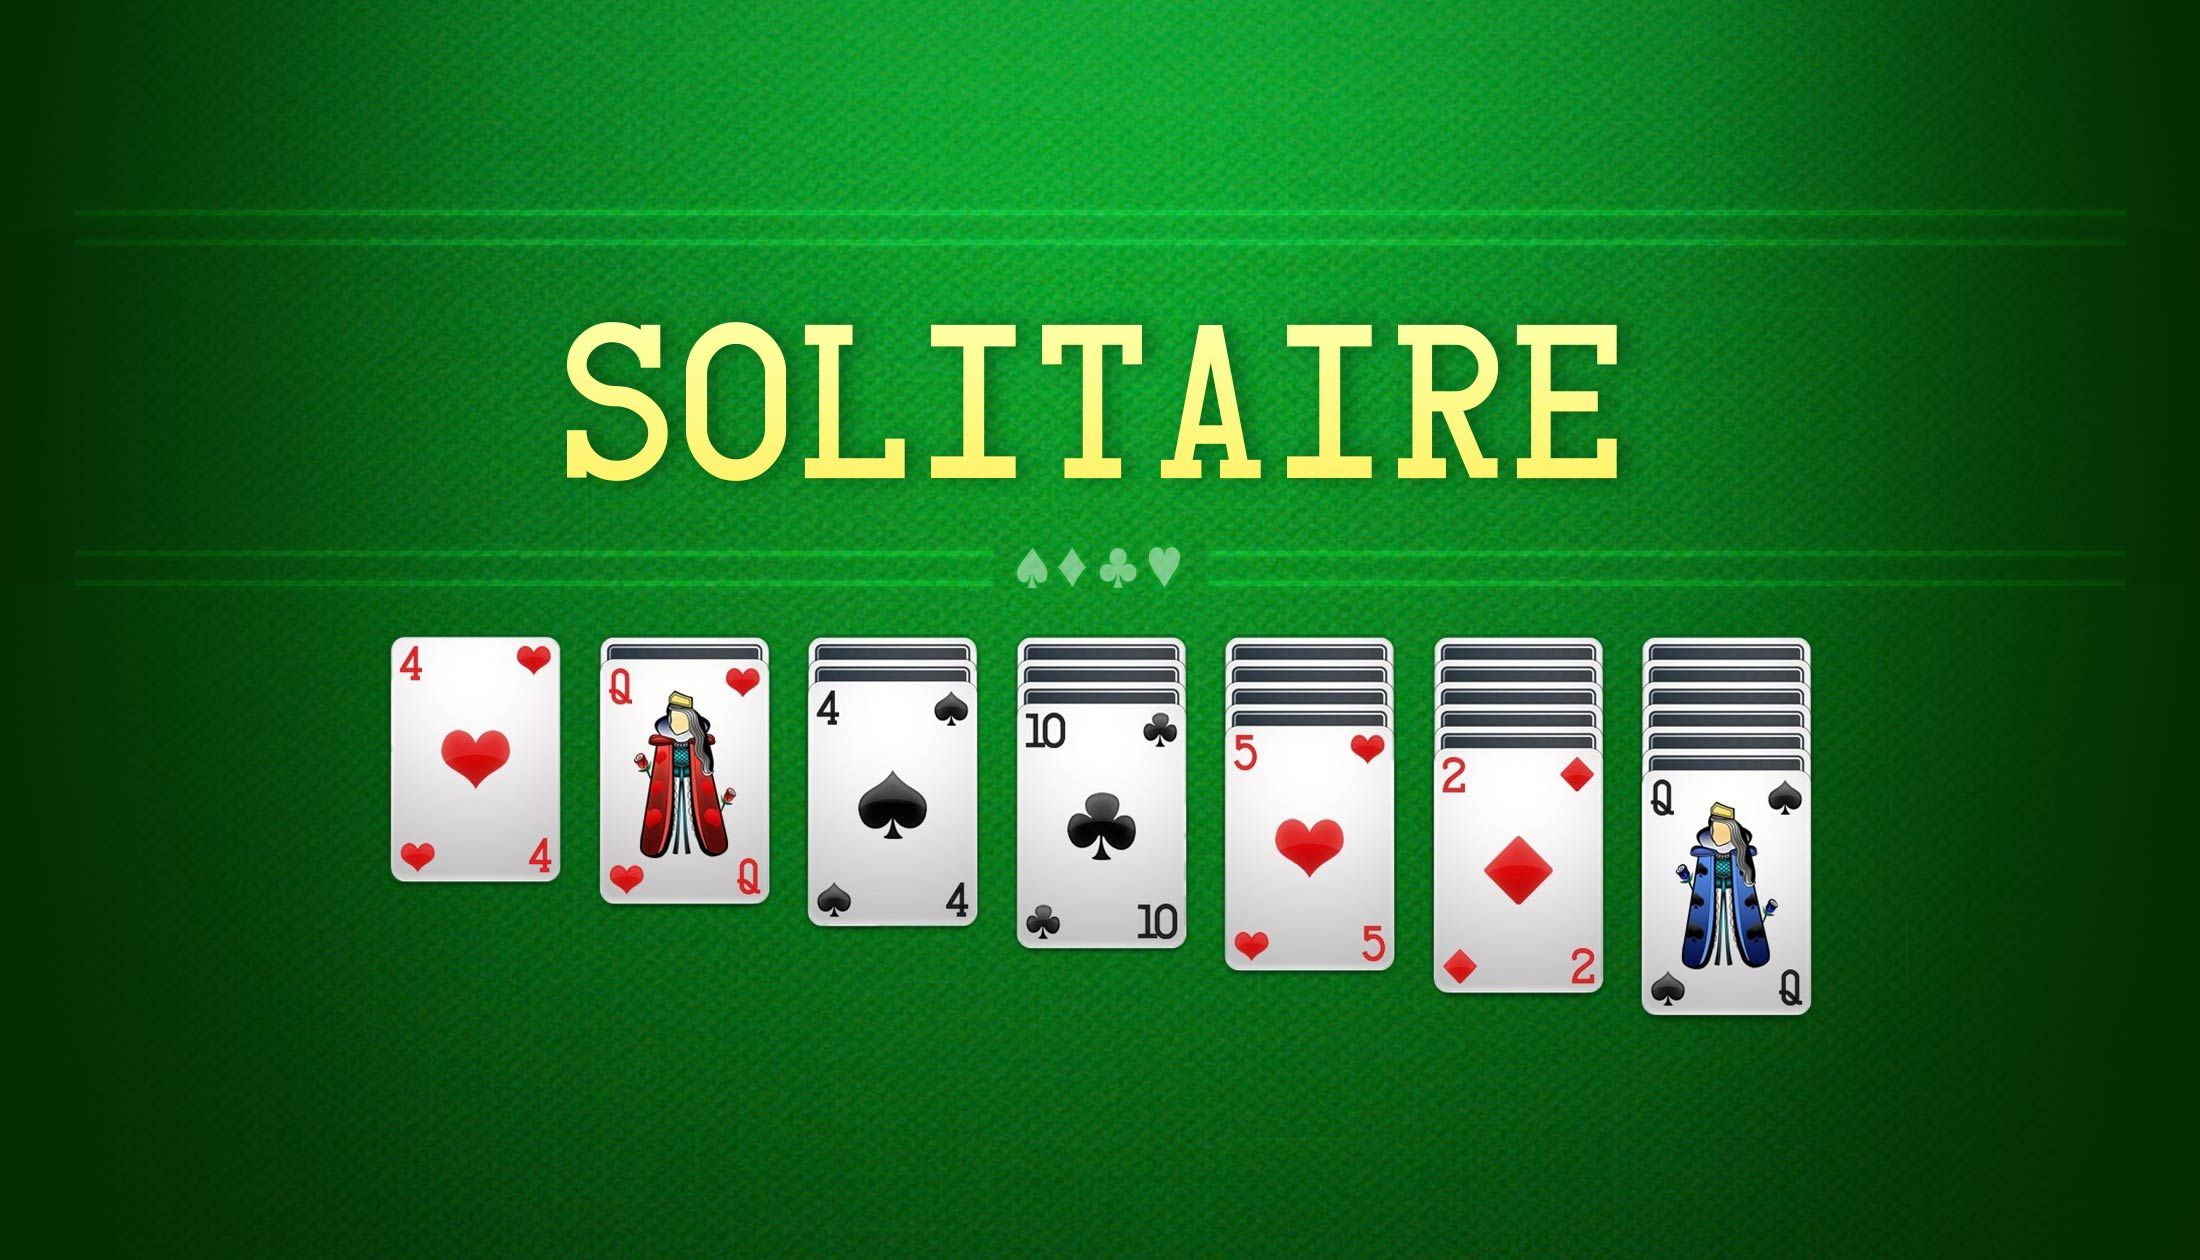 Free Solitaire Online • Play Solitaire Card Games Now! As